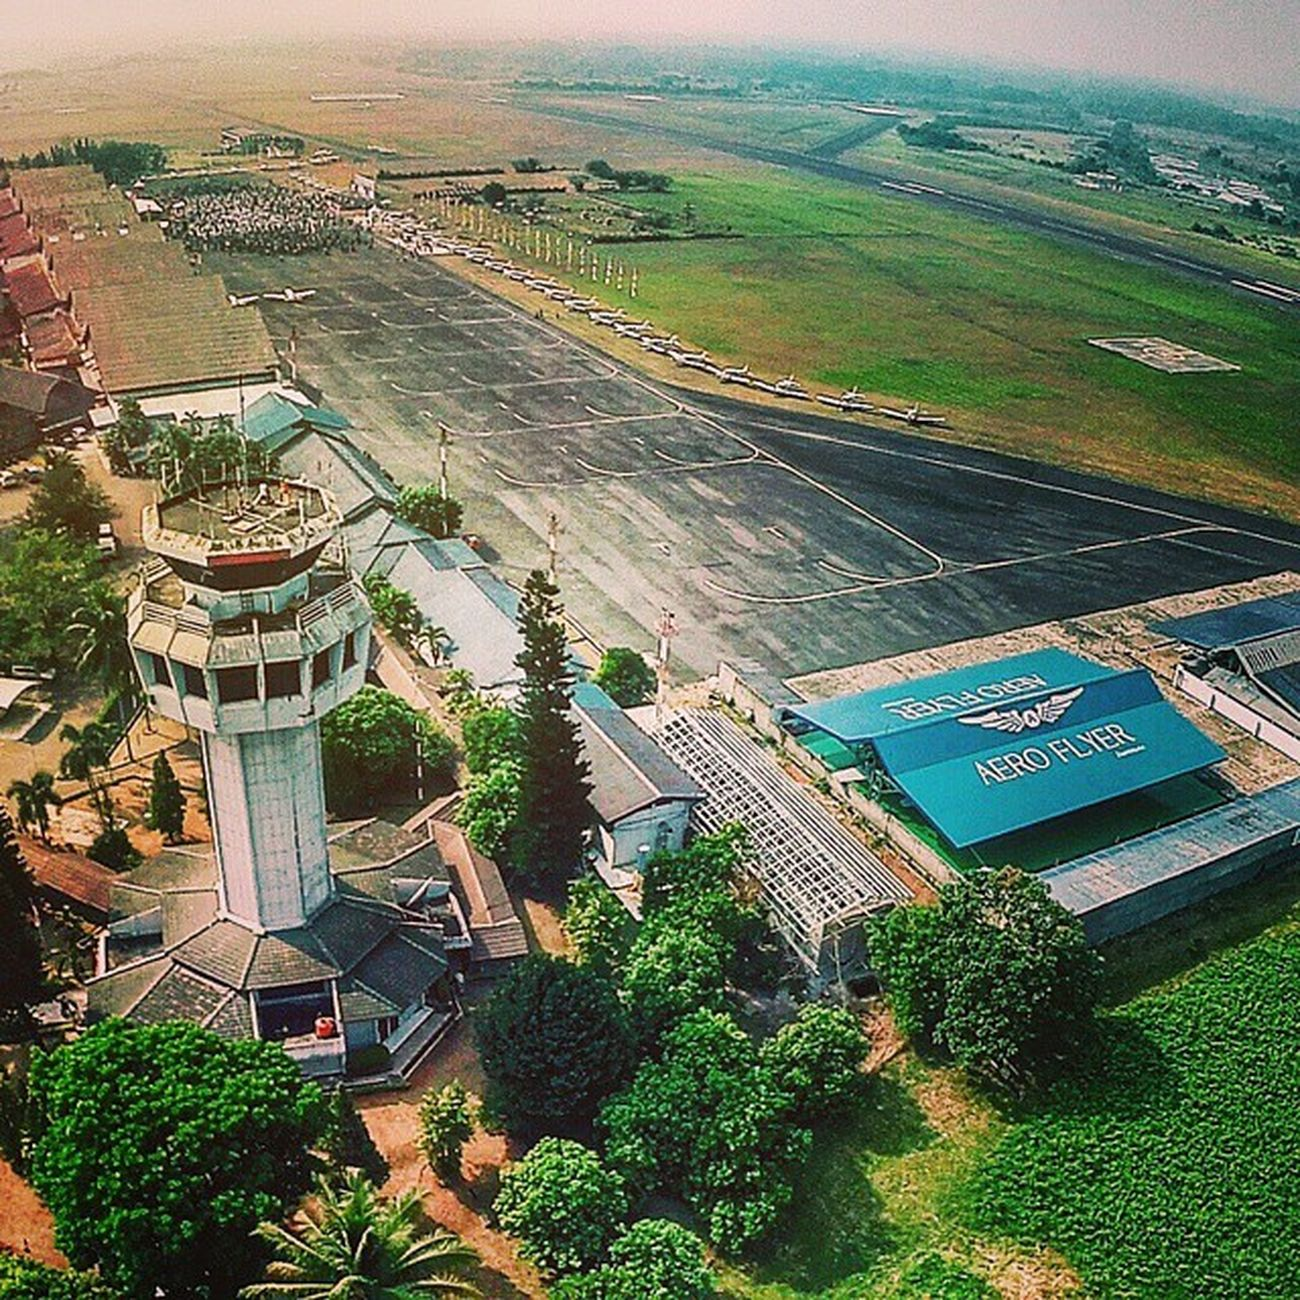 Boediarto Airport ? Aviation Flyingschool Stpi Bandarabudiarto gopro goproid thedjiguy goprooftheday djiphantom djiphantomid